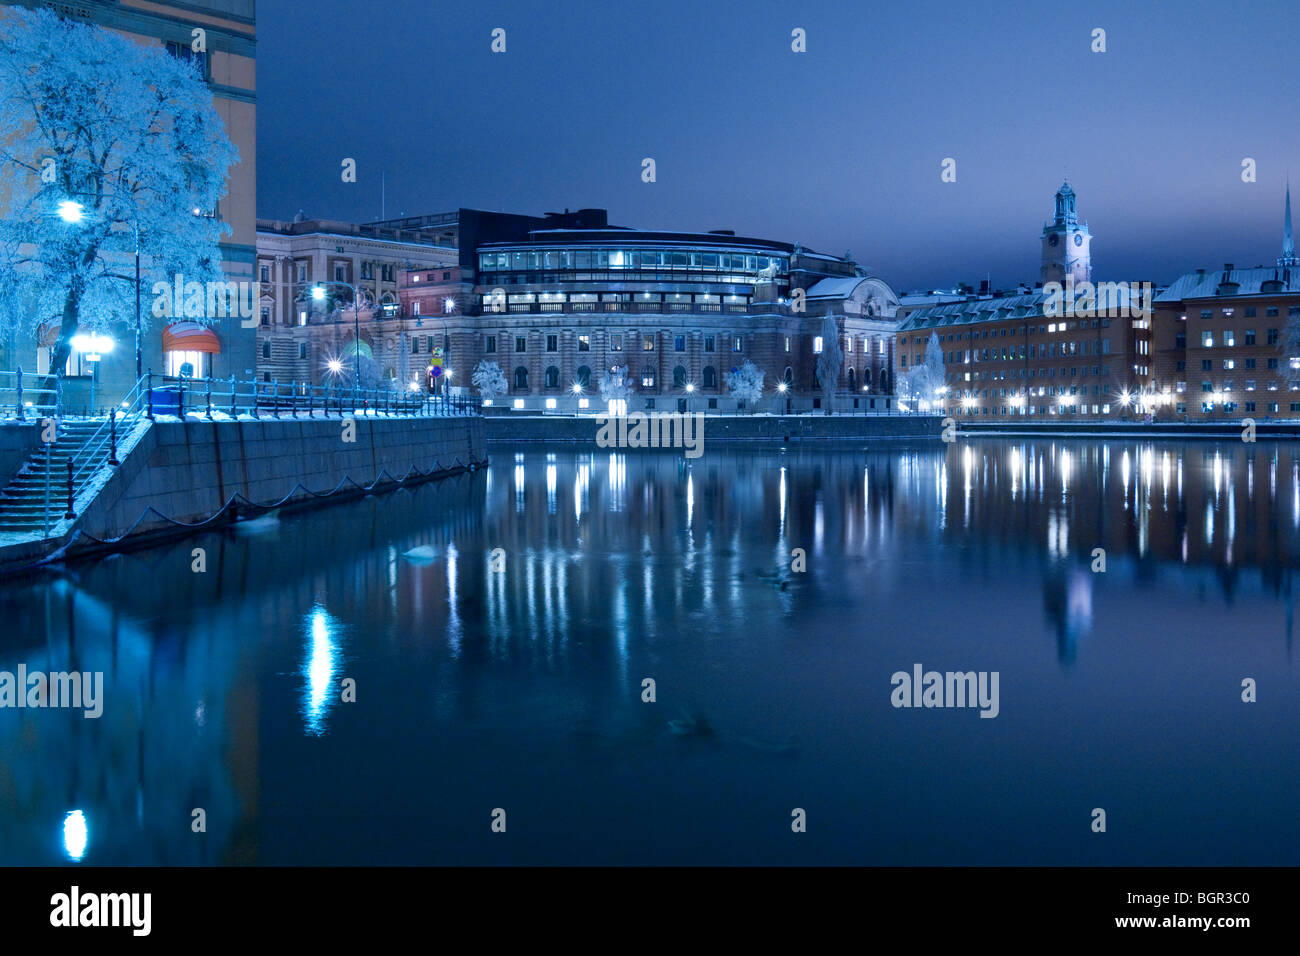 View of the Swedish parliament buildings on the island of Helgeandsholmen, seen from Strömgatan, Stockholm, Sweden Stock Photo